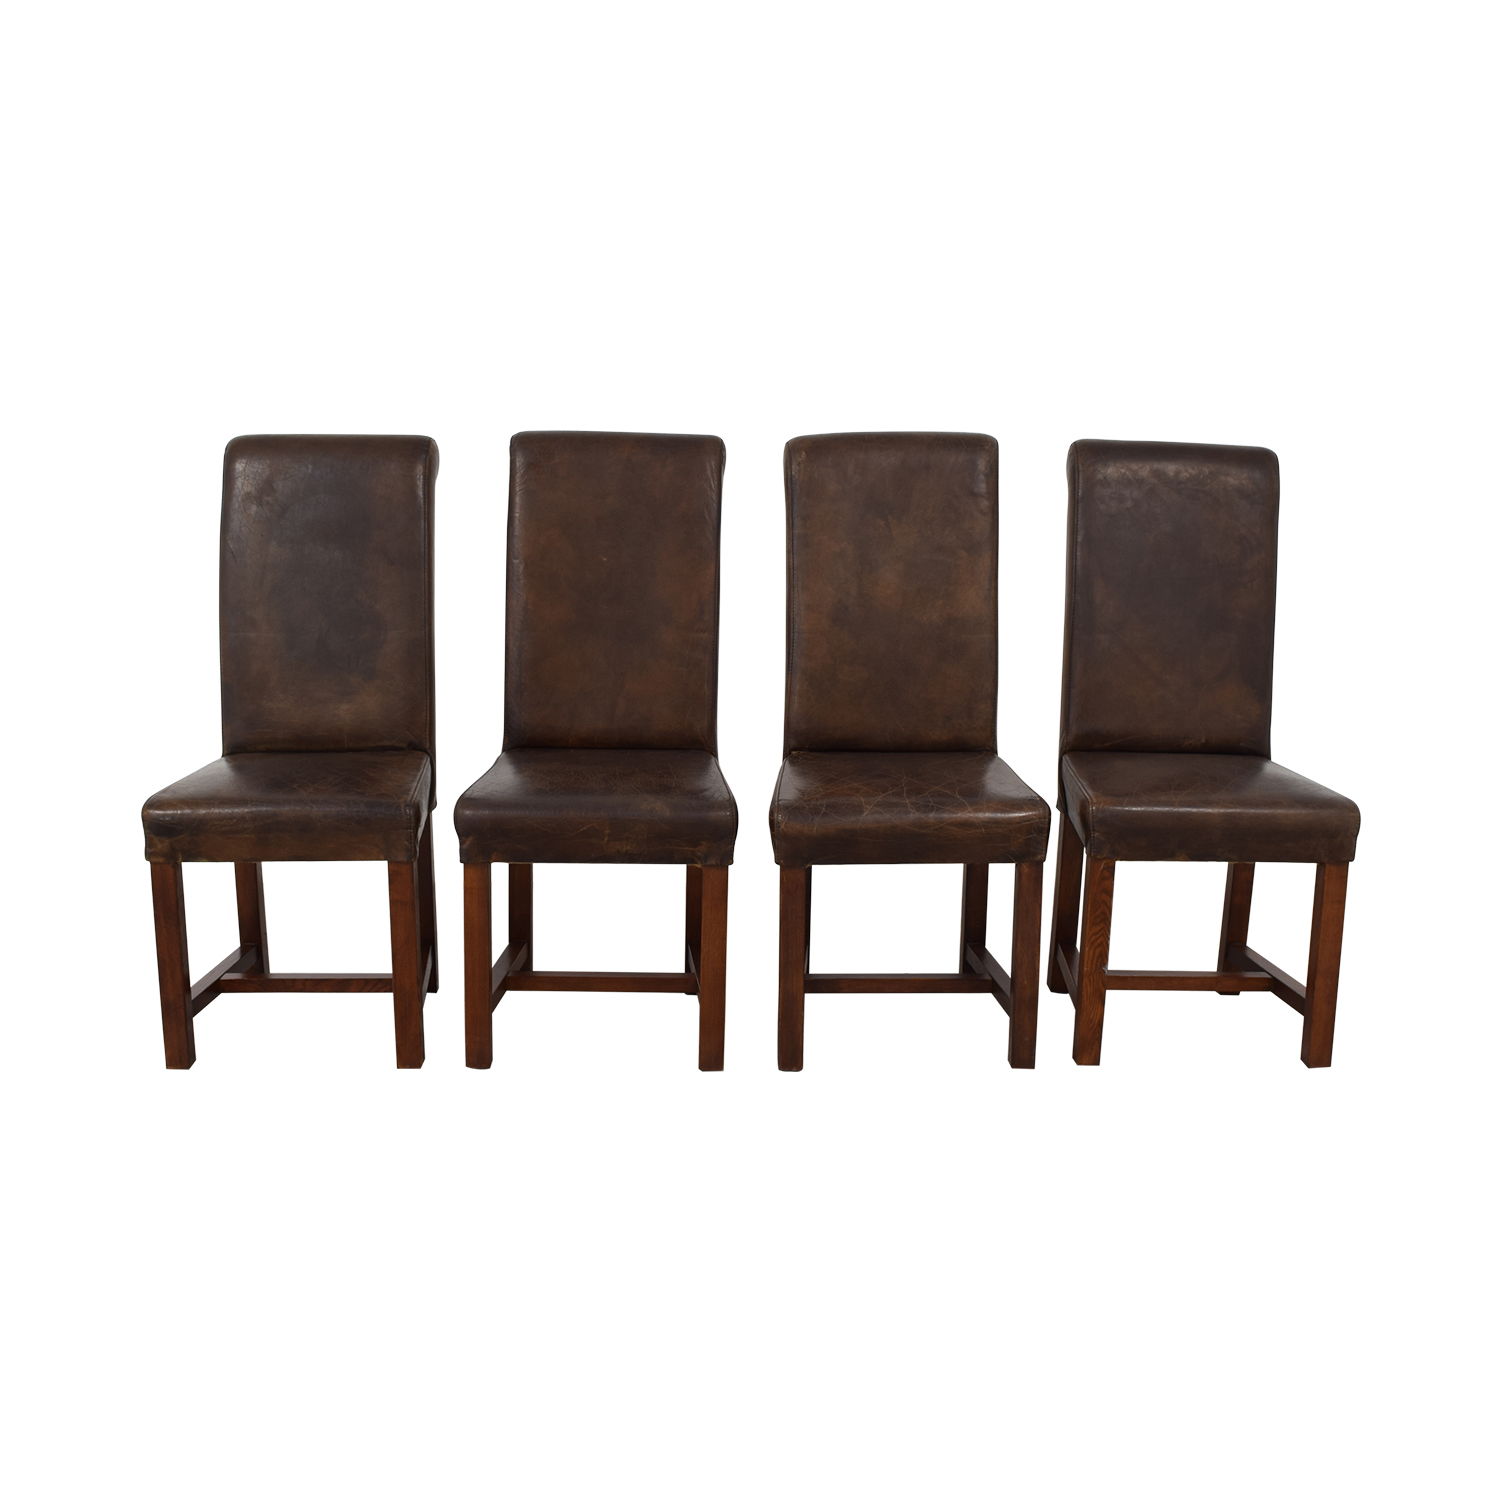 Four Hands Four Hands Faulkner Distressed Brown Leather Chairs nyc